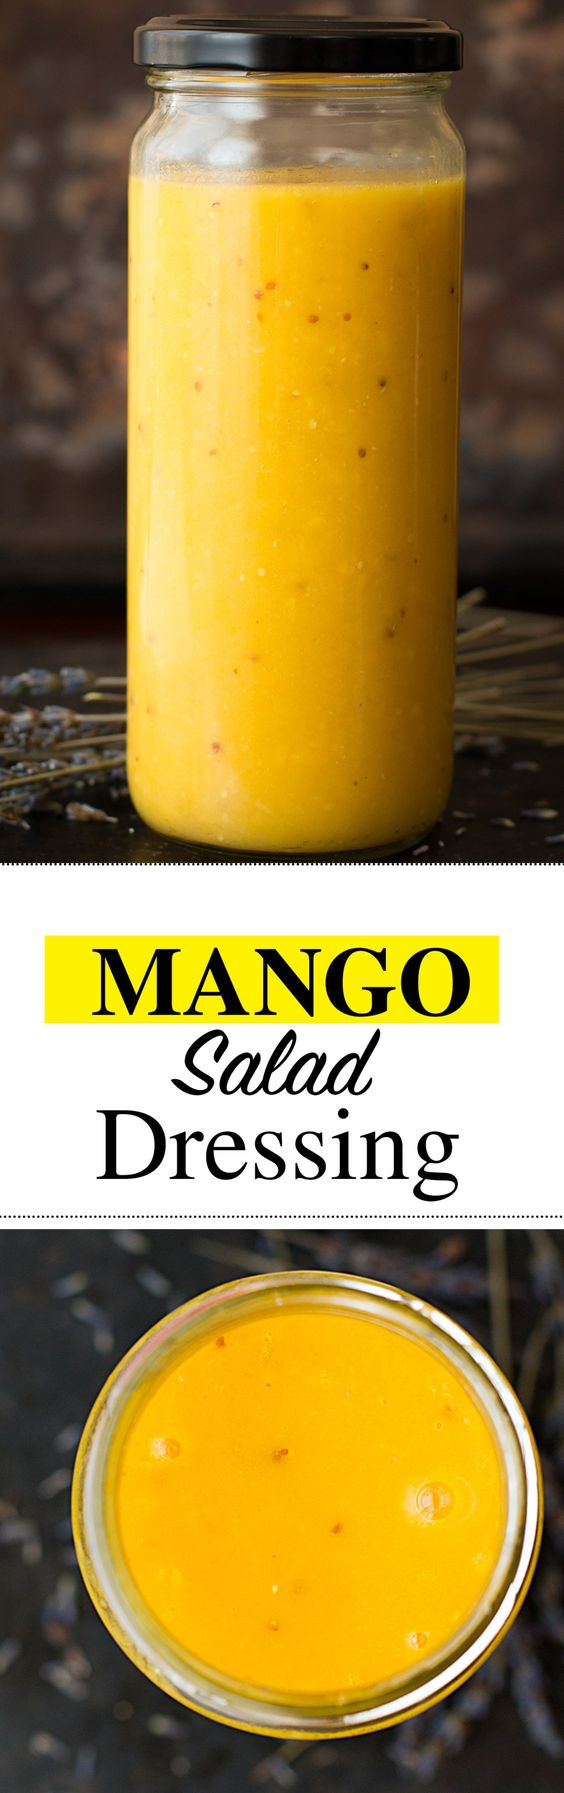 mango-salad-dressing-interest. Get this delicious and easy-to-follow simple Mango salad dressing. Bright, flavorful and so refreshing. Want to eat healthier? Make your own salad dressing without mayo.: